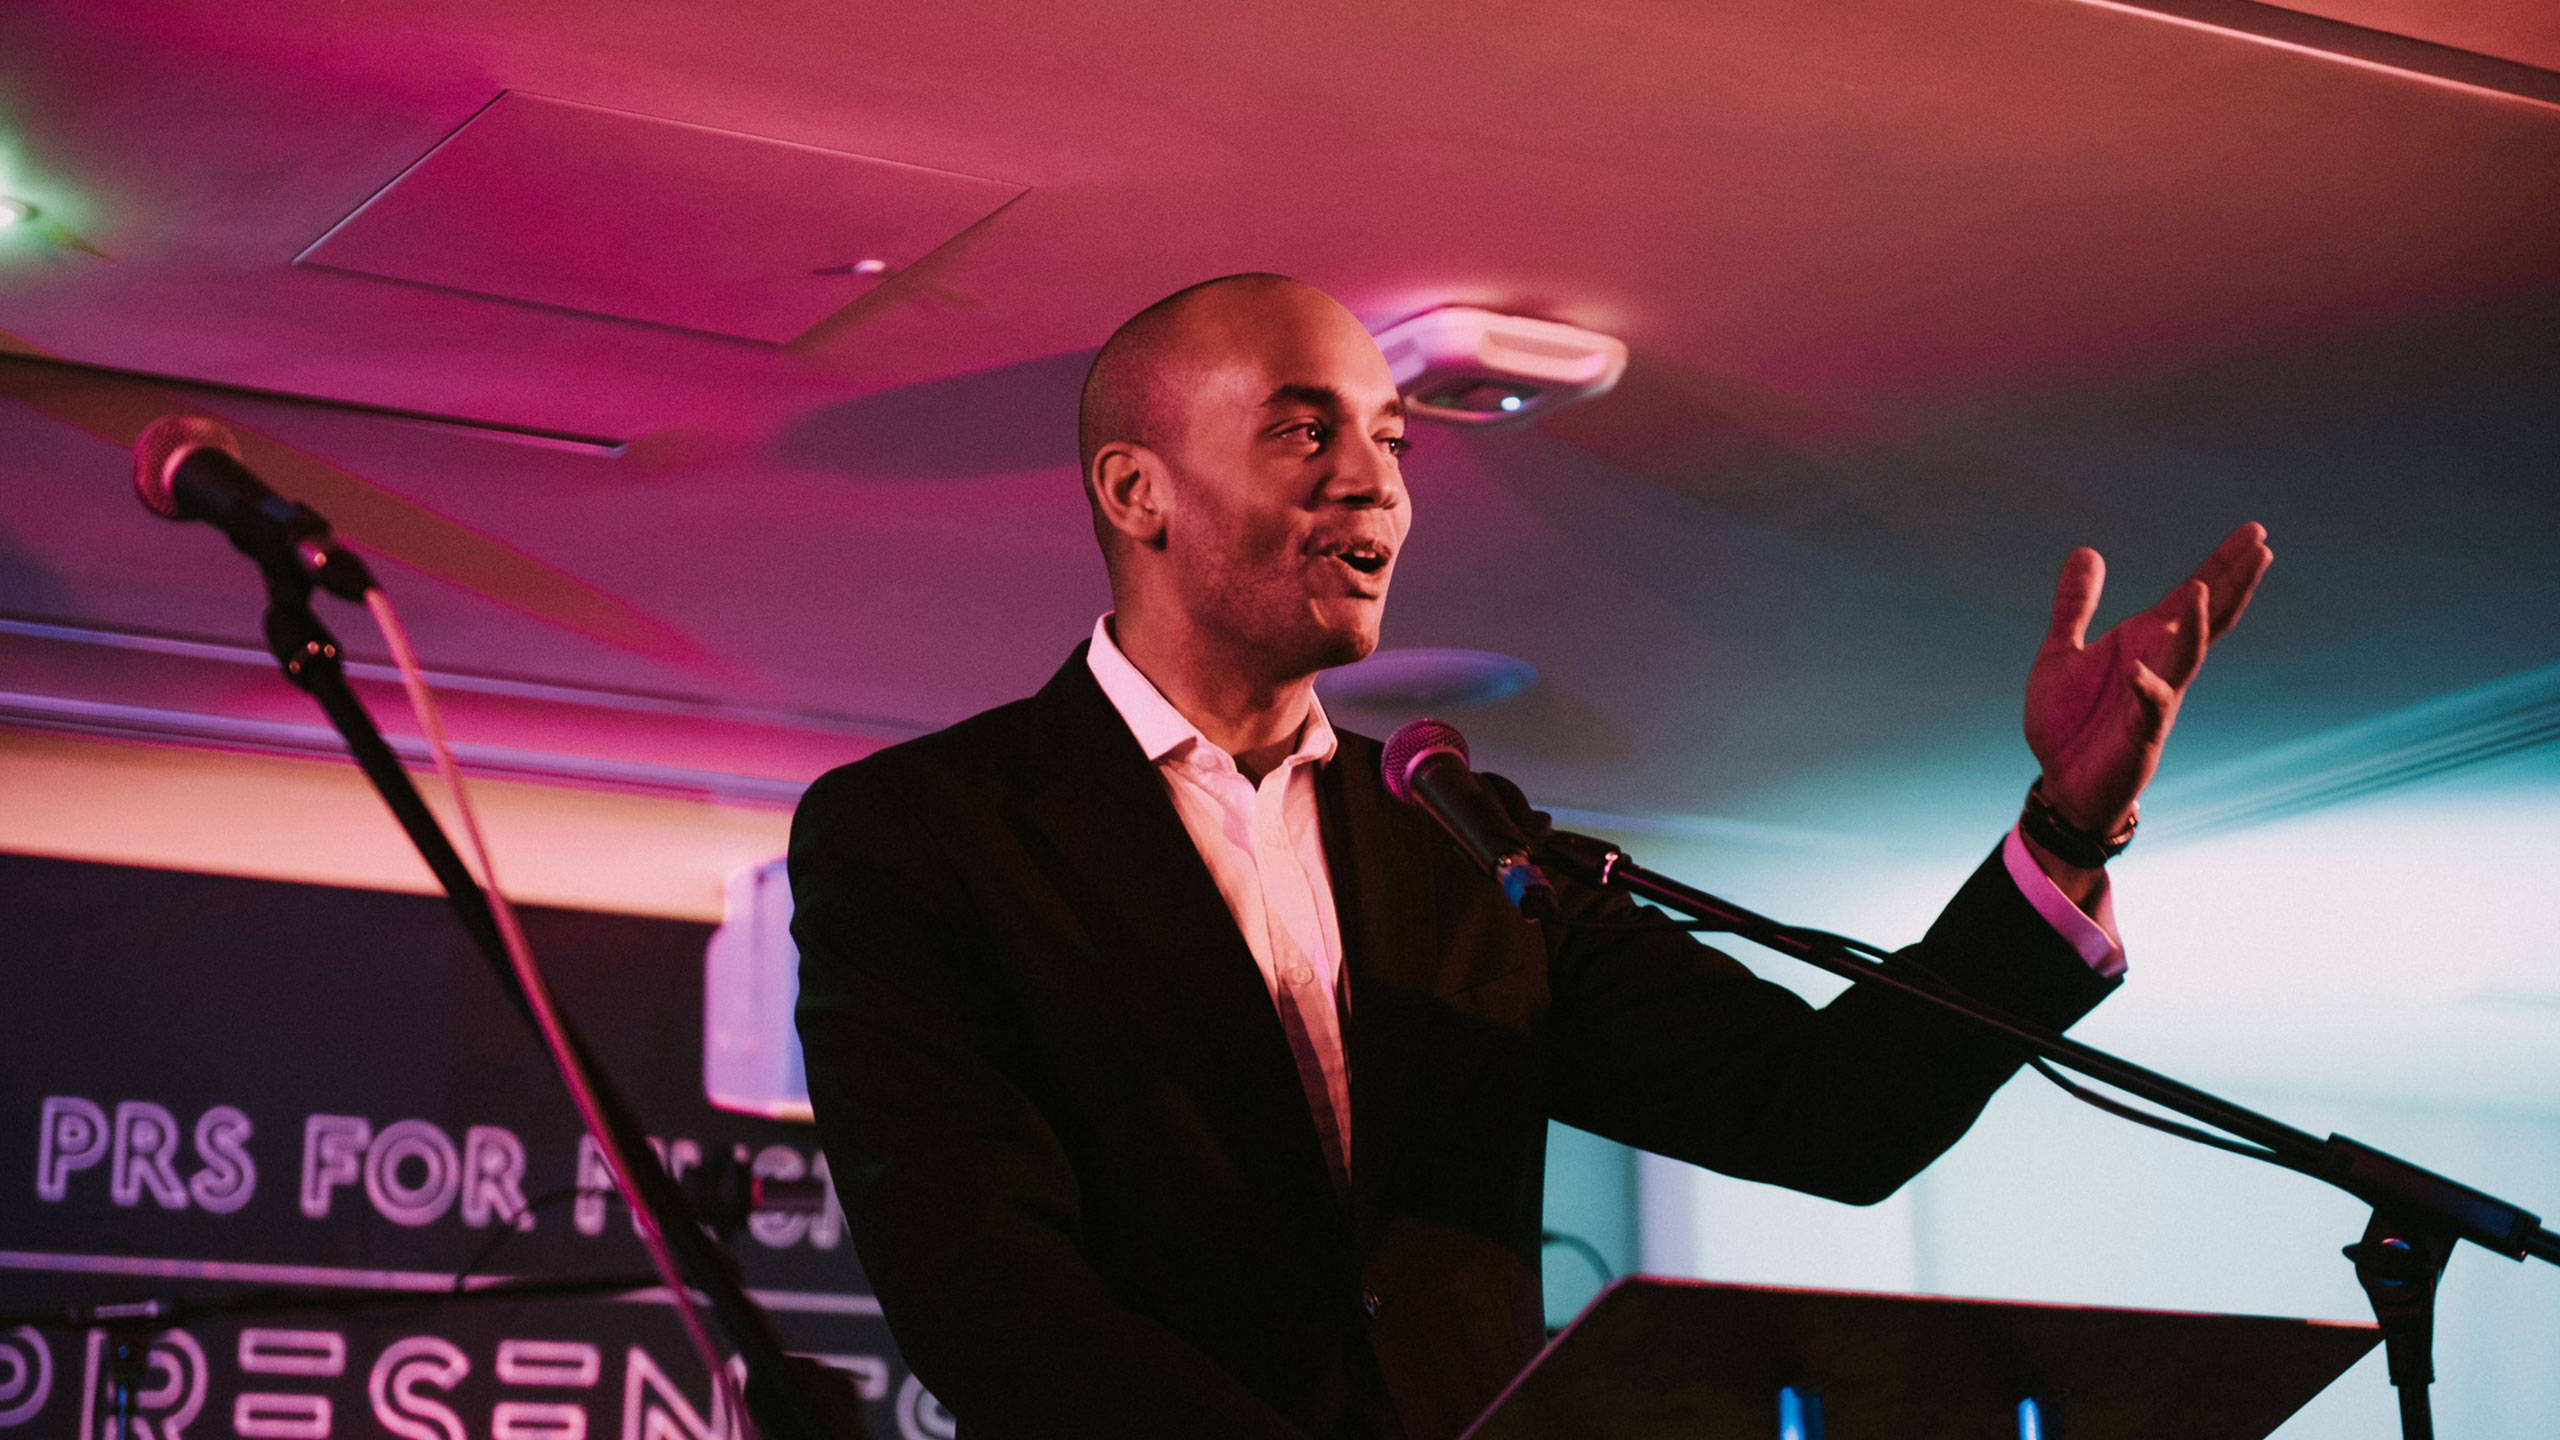 Chuka Umunna, former MP for Streatham, and PRS for Music Ambassador, talks on stage at PRS for Music Presents